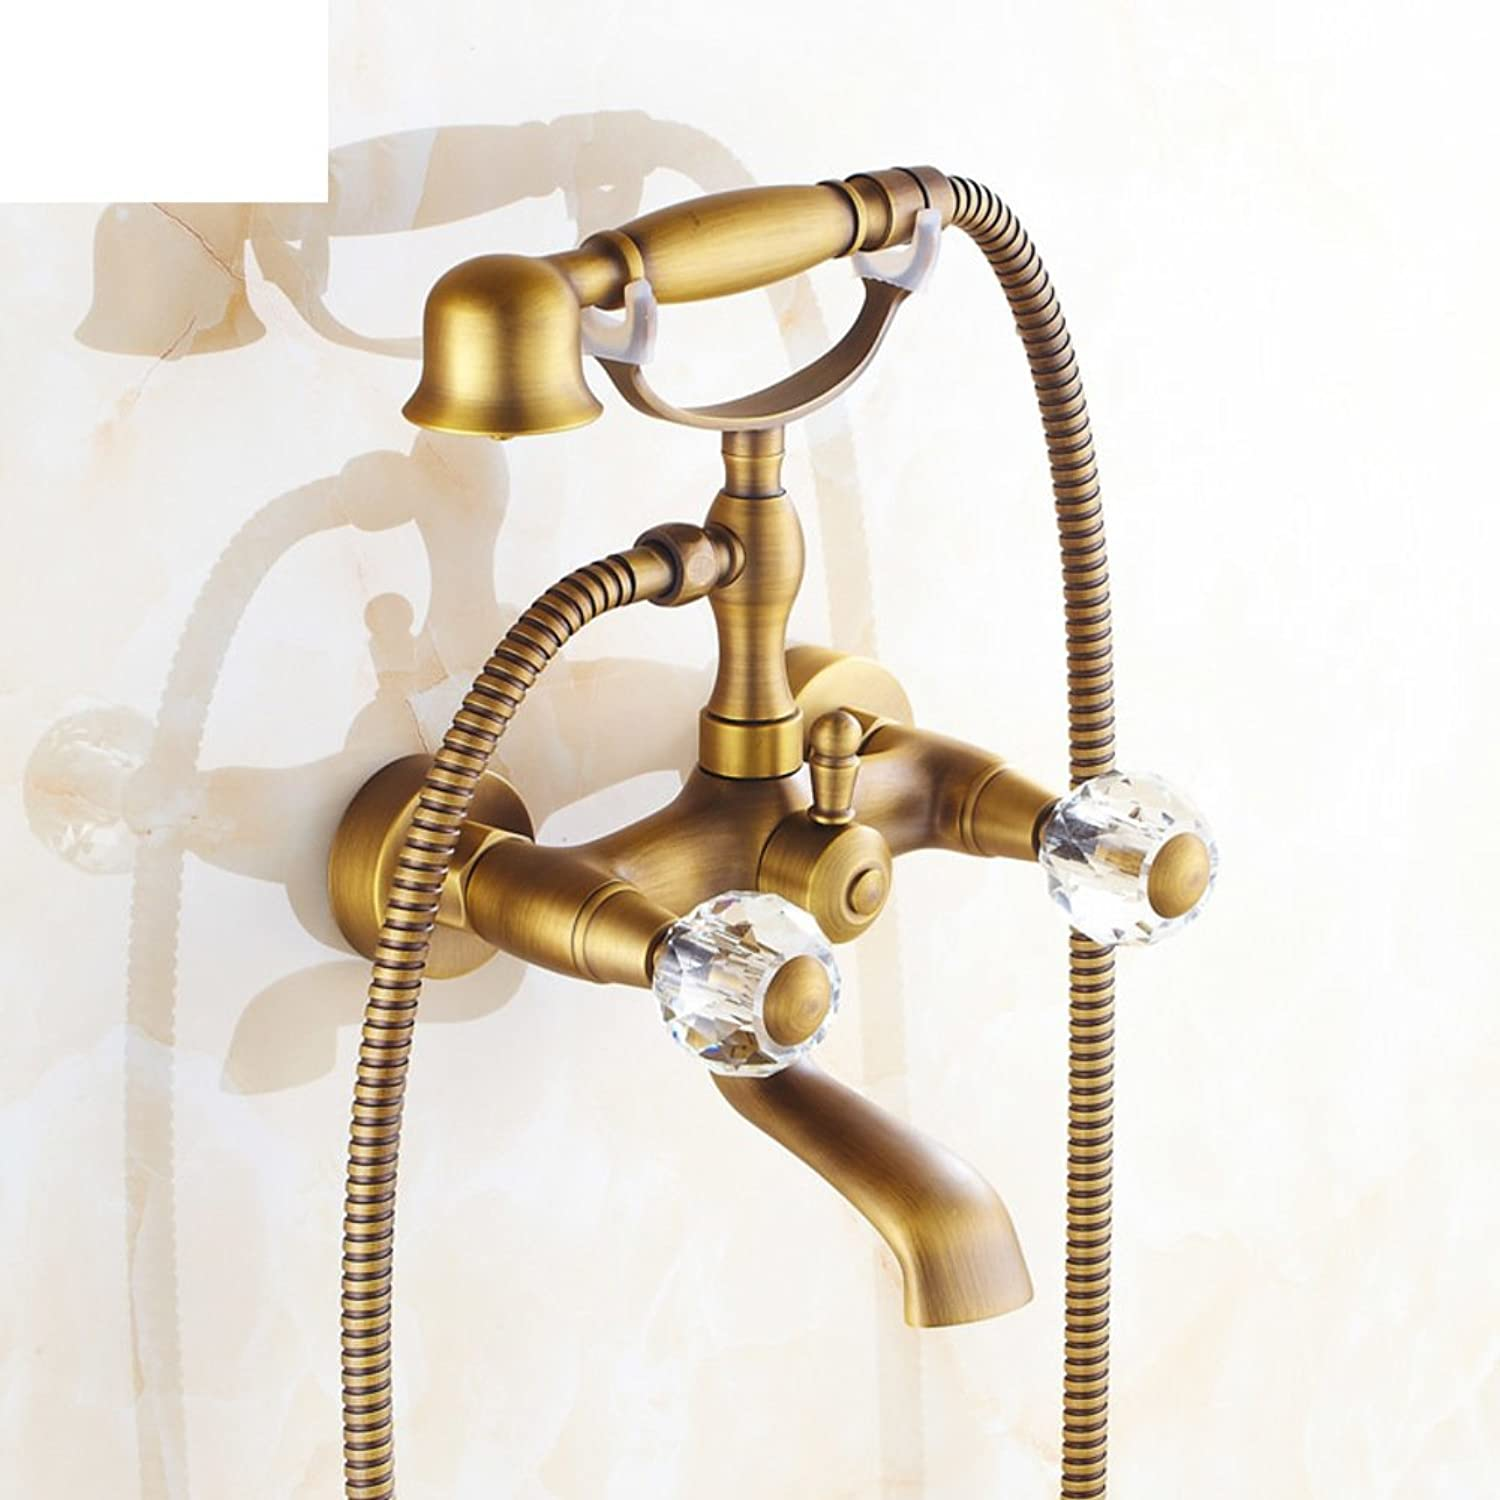 Copper Antique Bathtub Faucet European-Style Shower Kit Simple Shower Set Bathroom-A